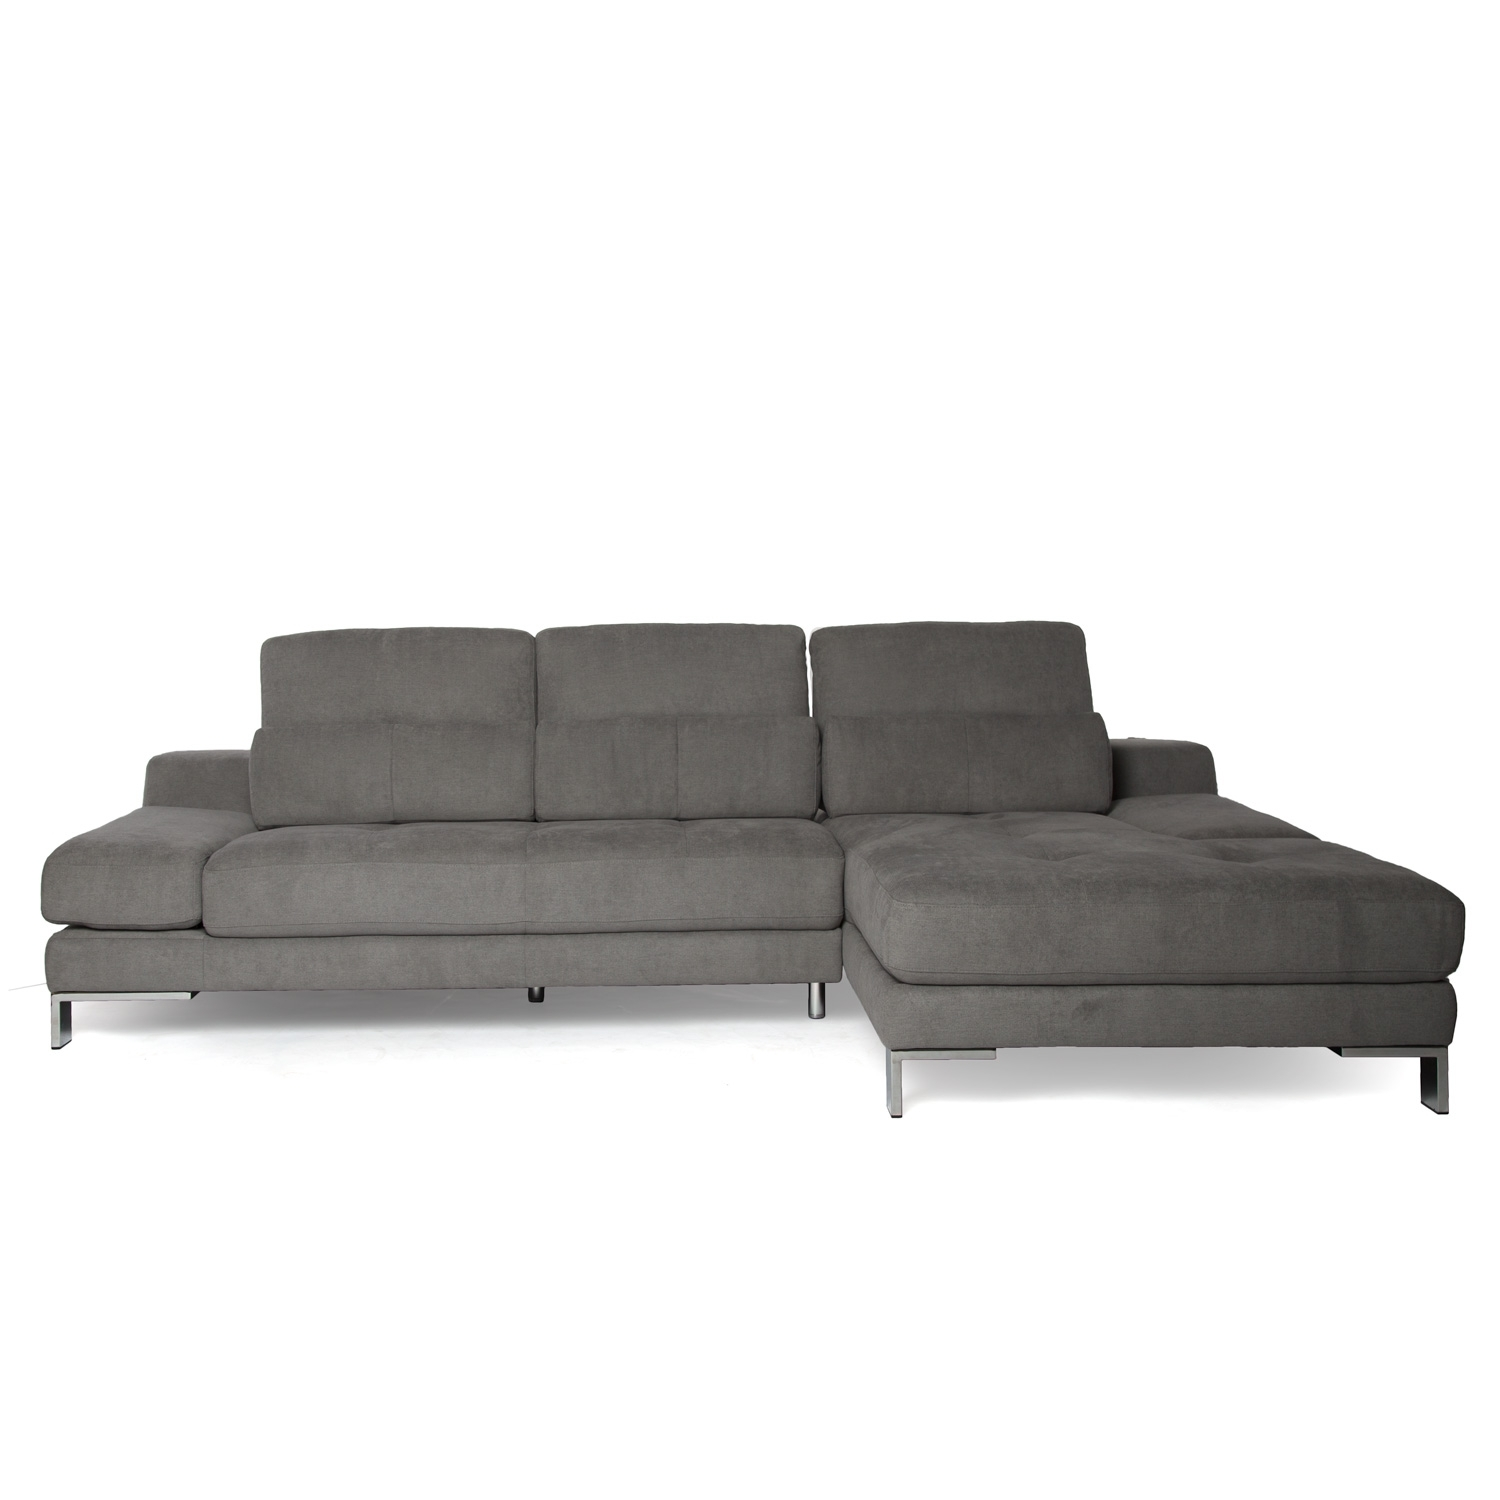 Fun And Functional Fabric Sectional Sofa With Regard To Sectional Sofas At Bc Canada (View 5 of 15)